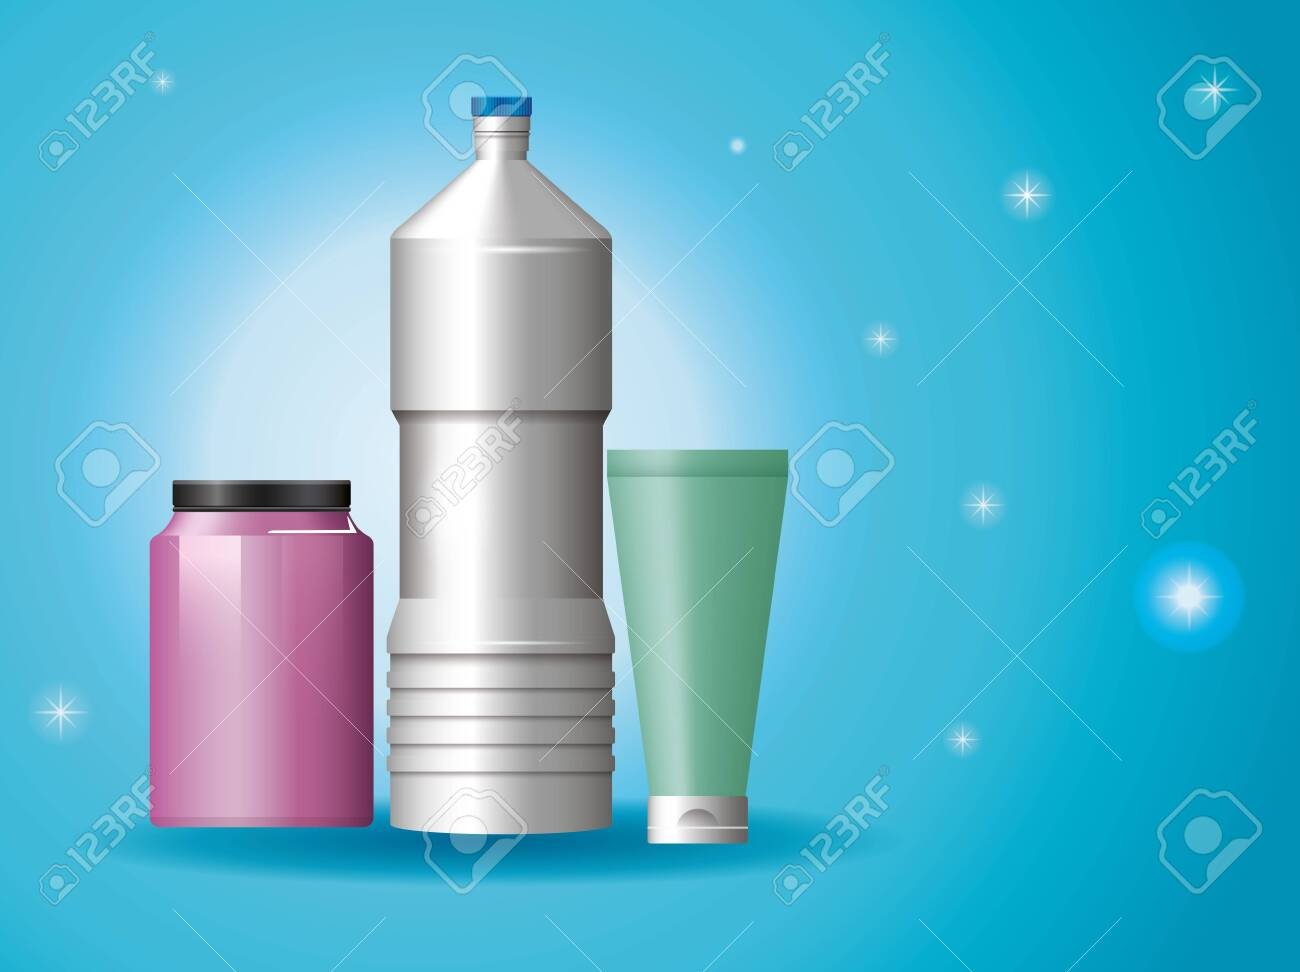 set of materials and styles bottles products vector illustration design - 150062672